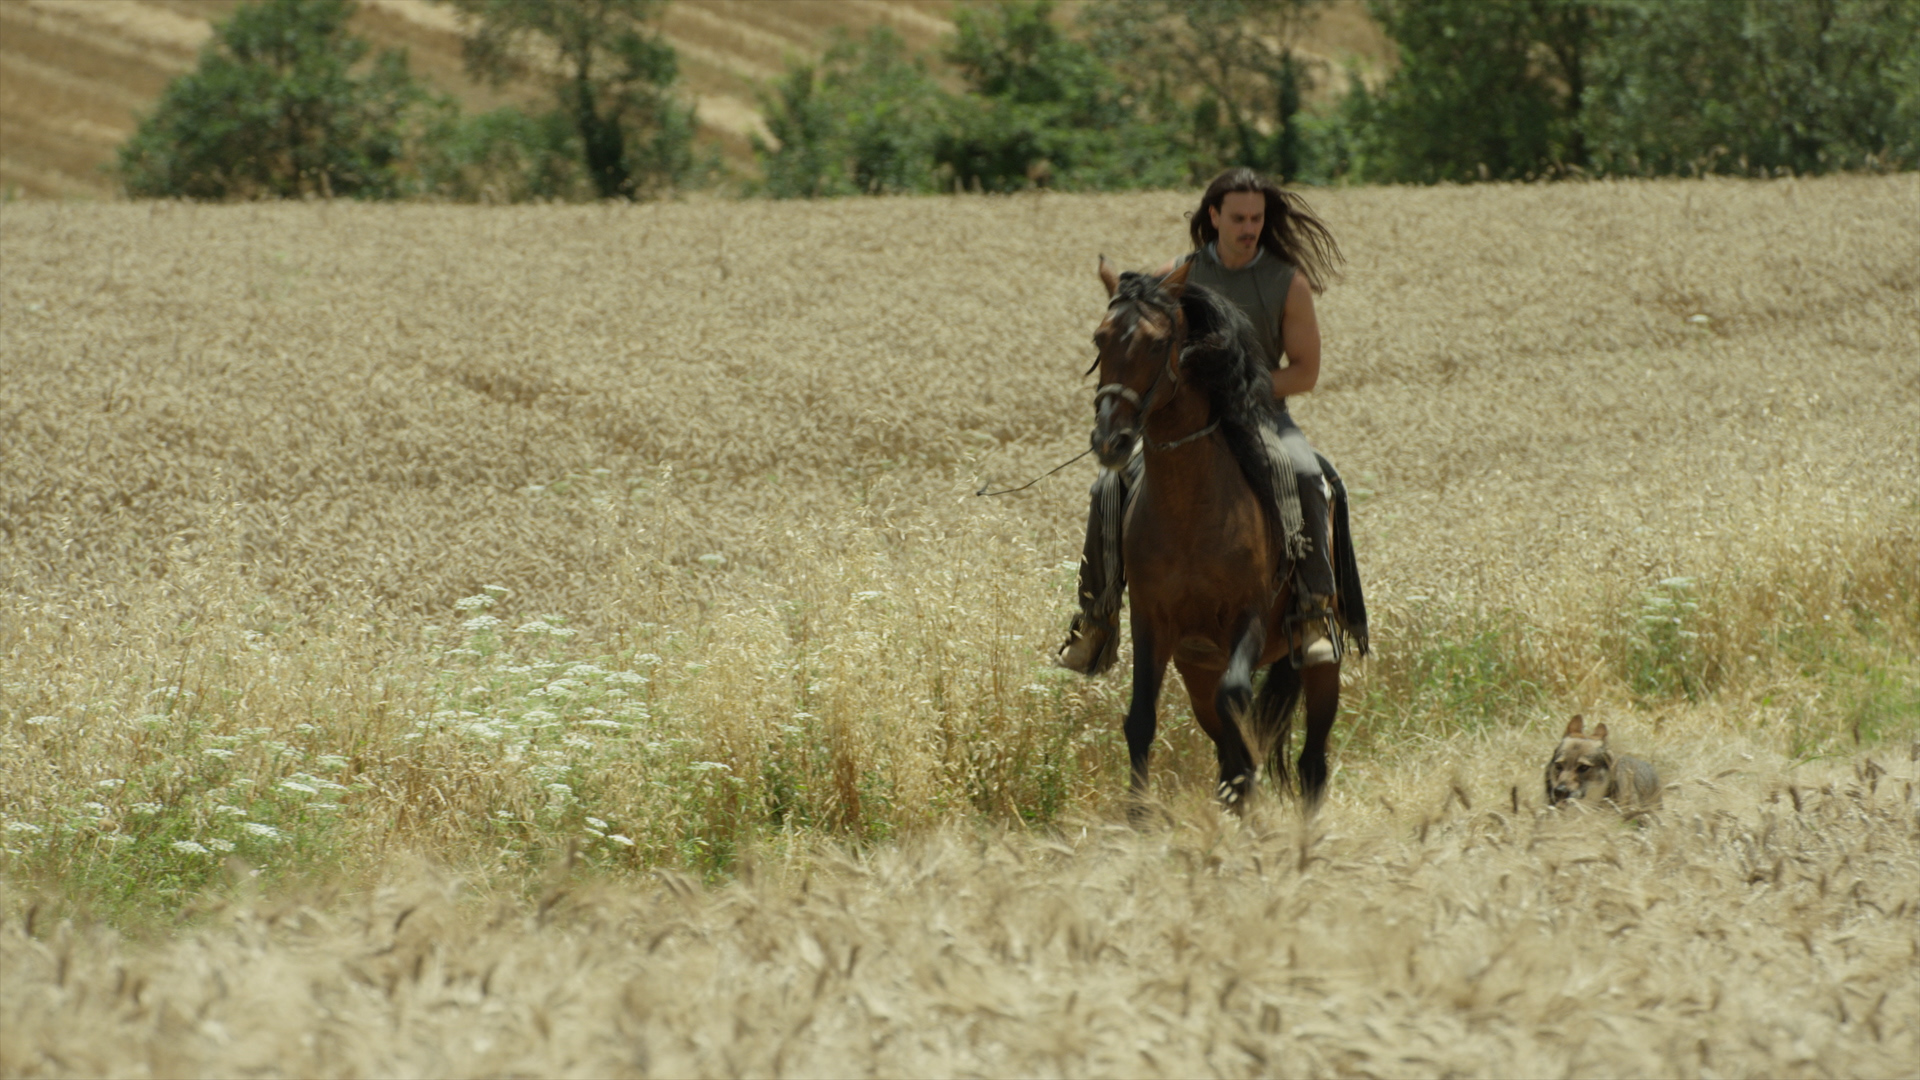 On location shooting OVERLAND in Abruzzo, Italy with a falconer, his horse, and his wolf.